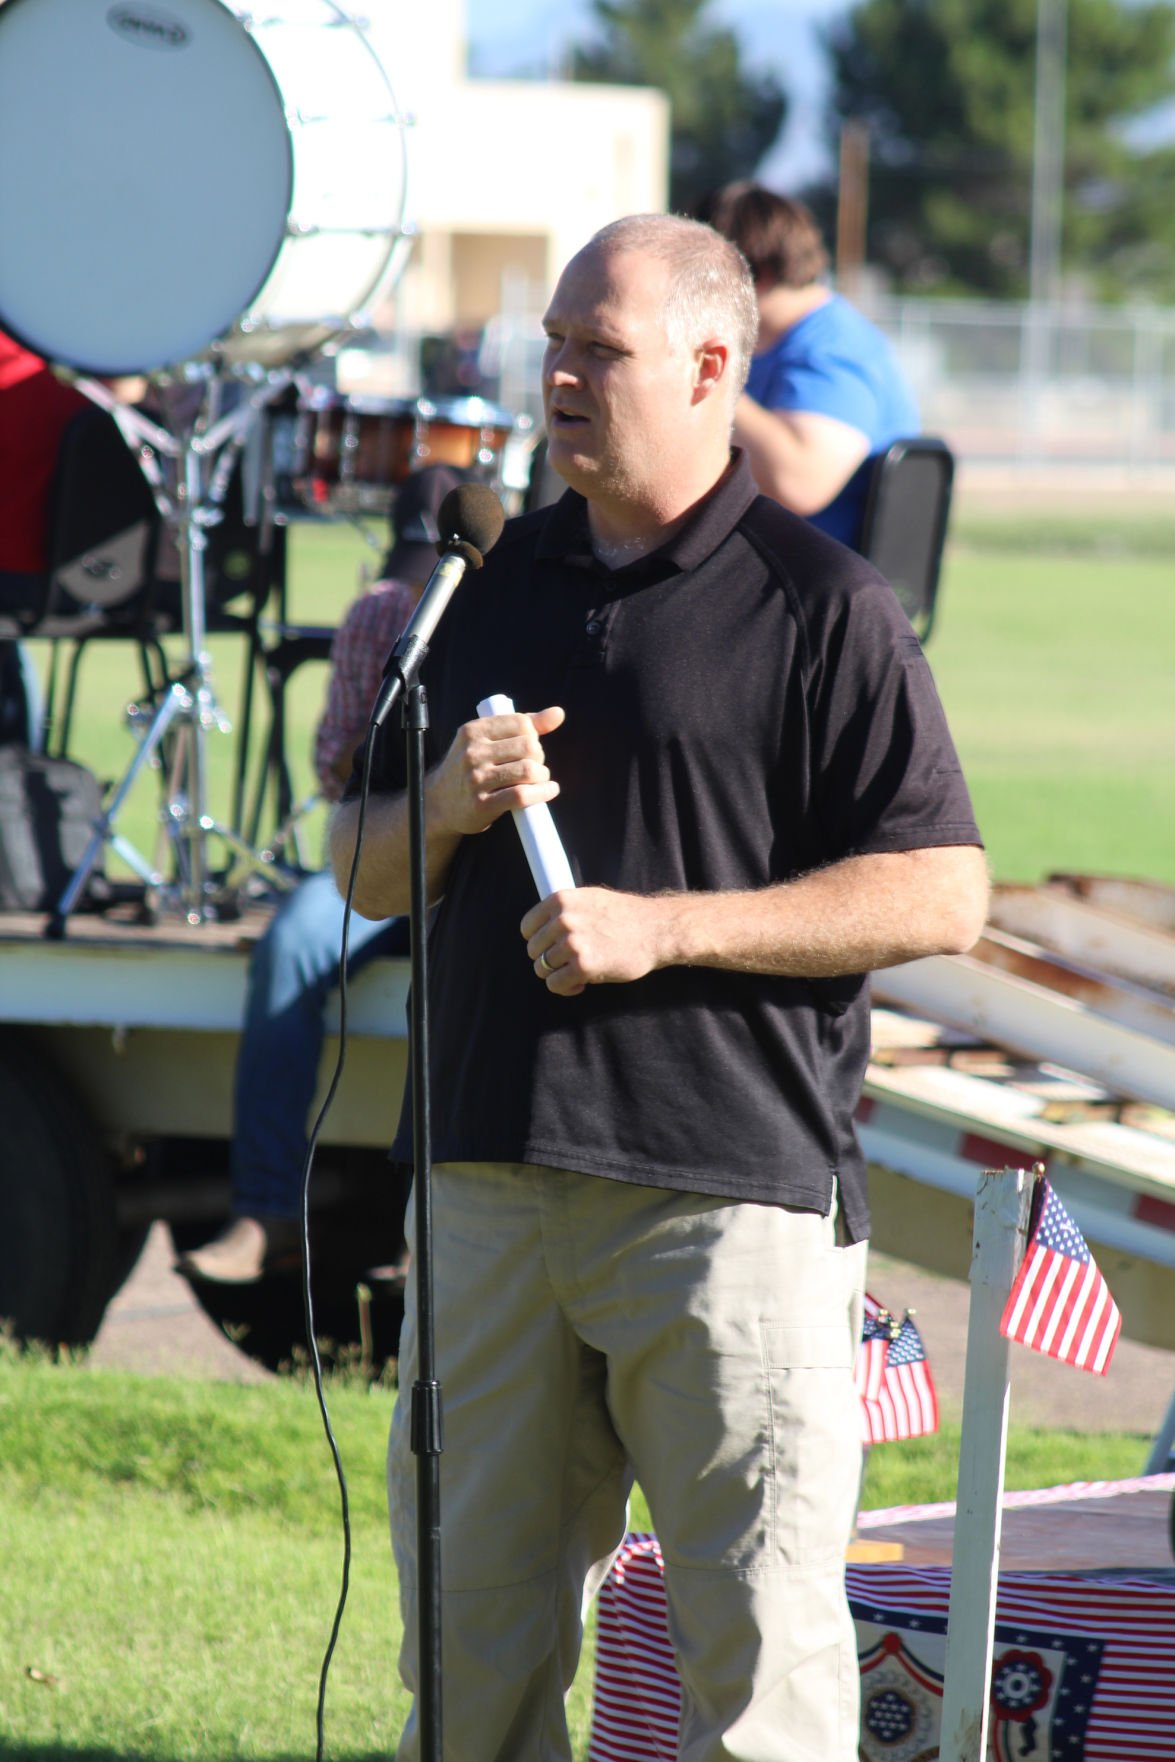 Happy Birthday America Local News Stories Eacourier Com